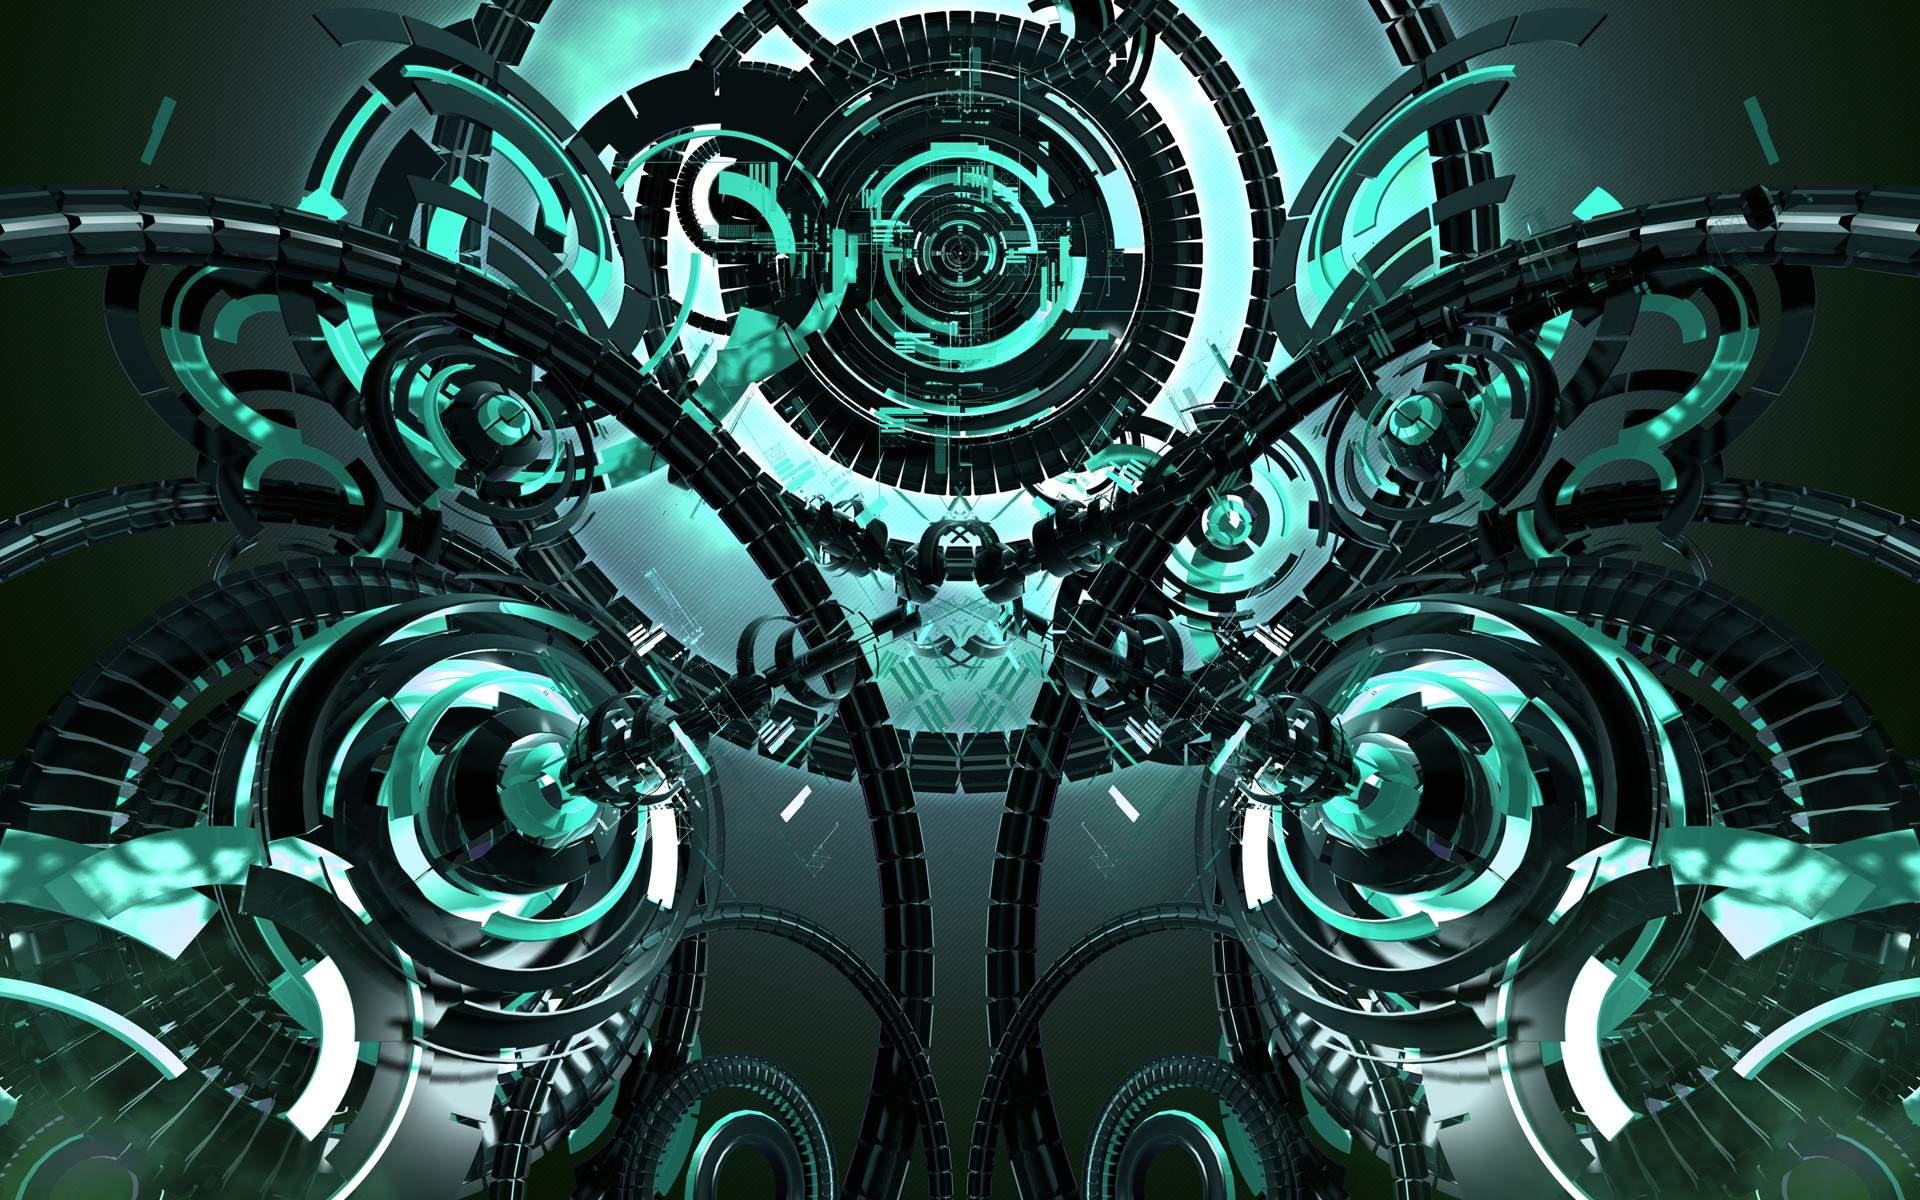 abstract Futuristic Technology Mechanism Wallpapers HD 1920x1200